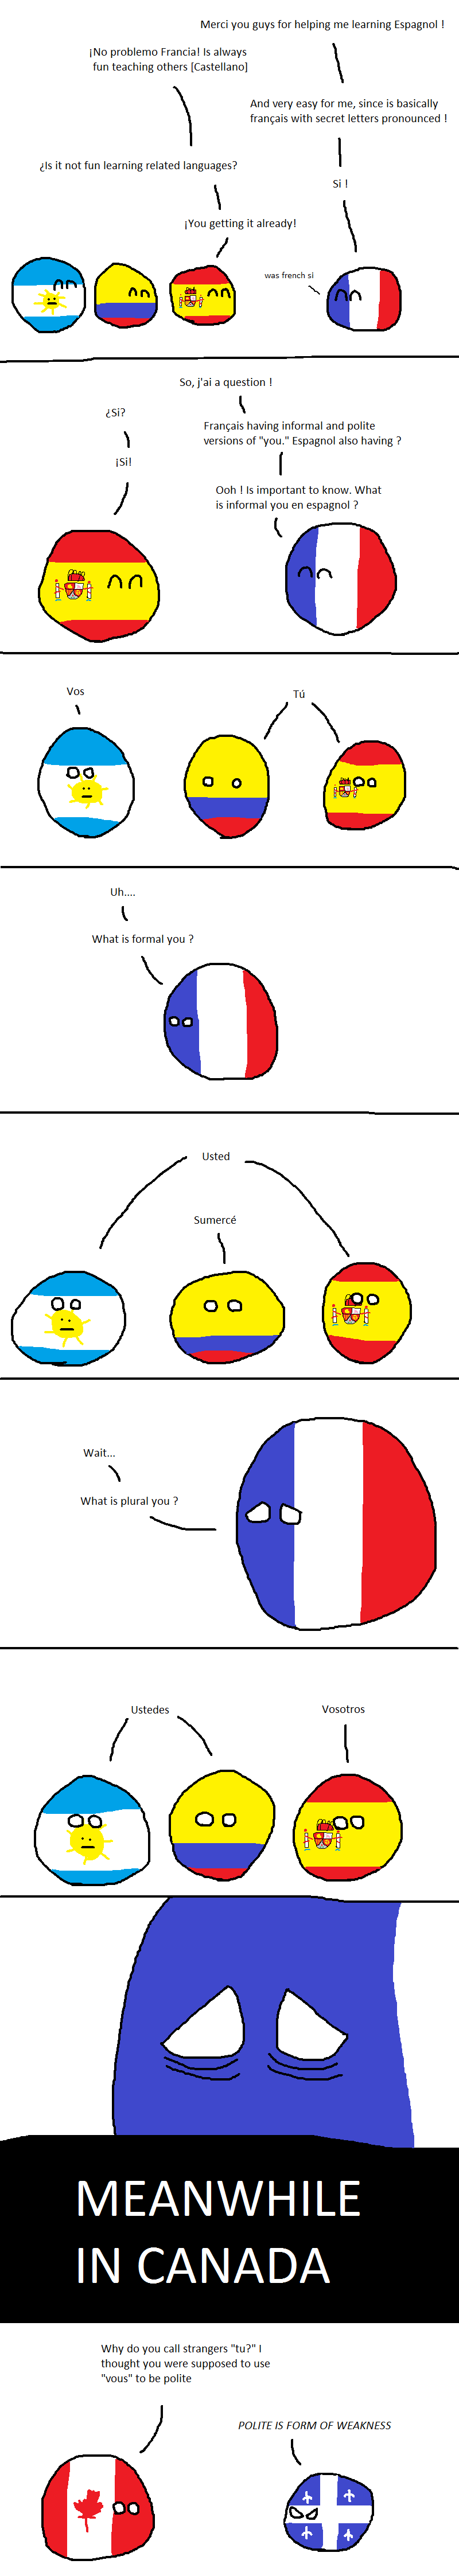 France learns Spanish